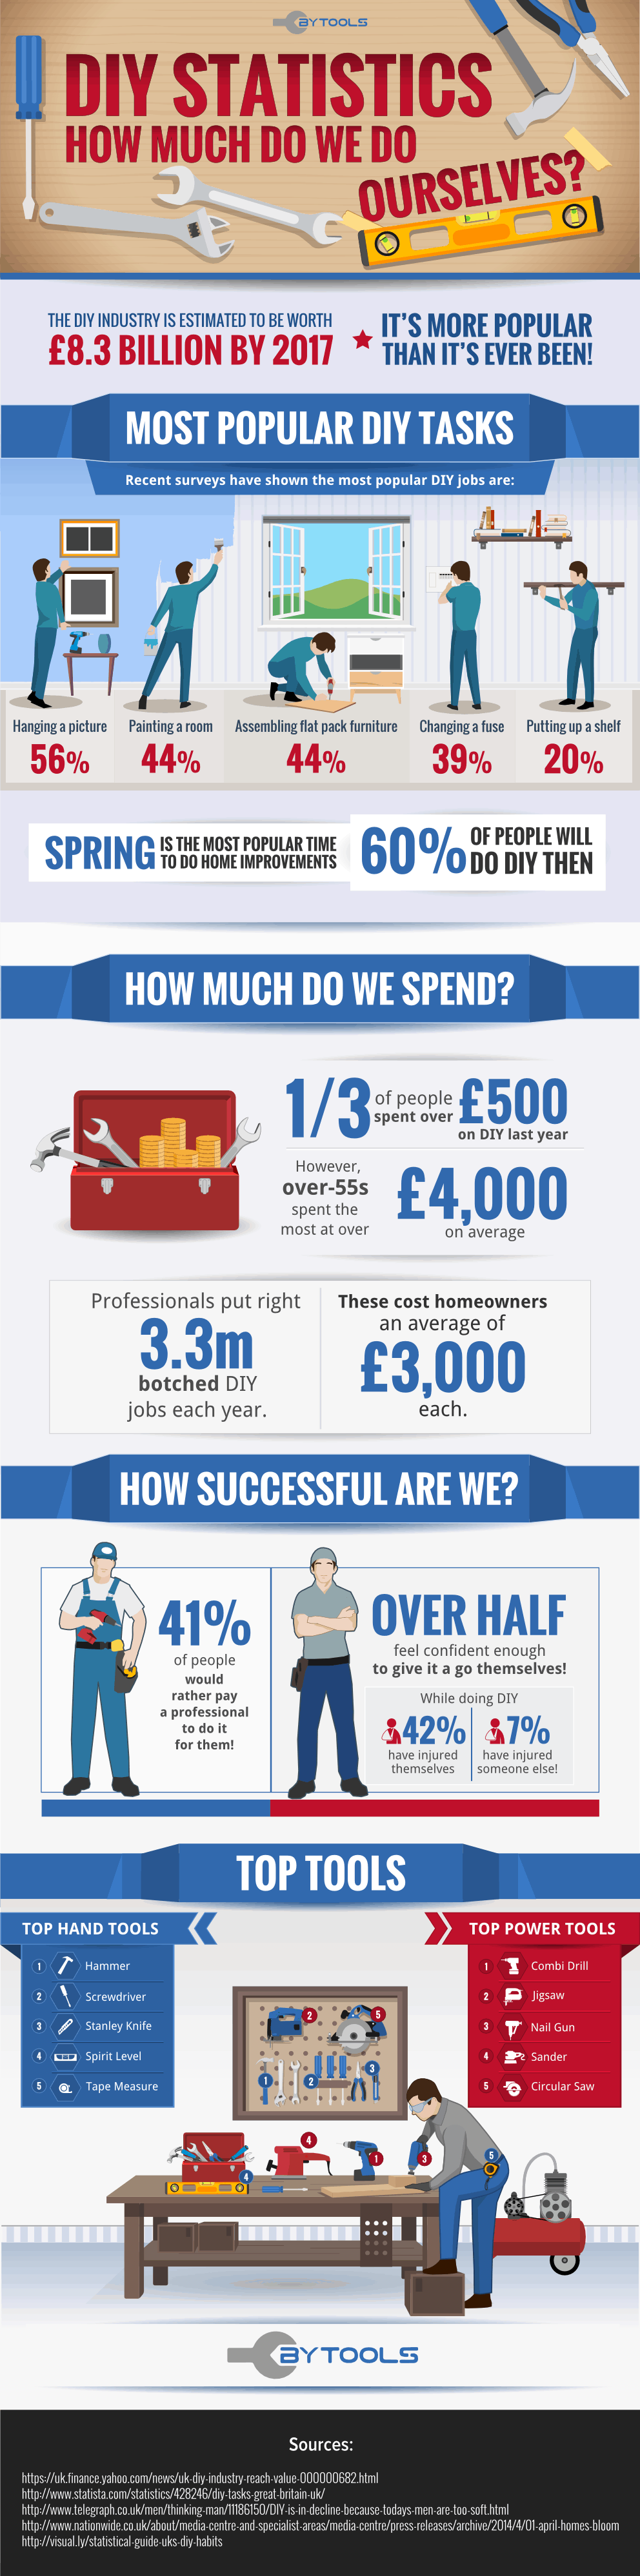 Infographic on DIY statistics: how much do we do ourselves?